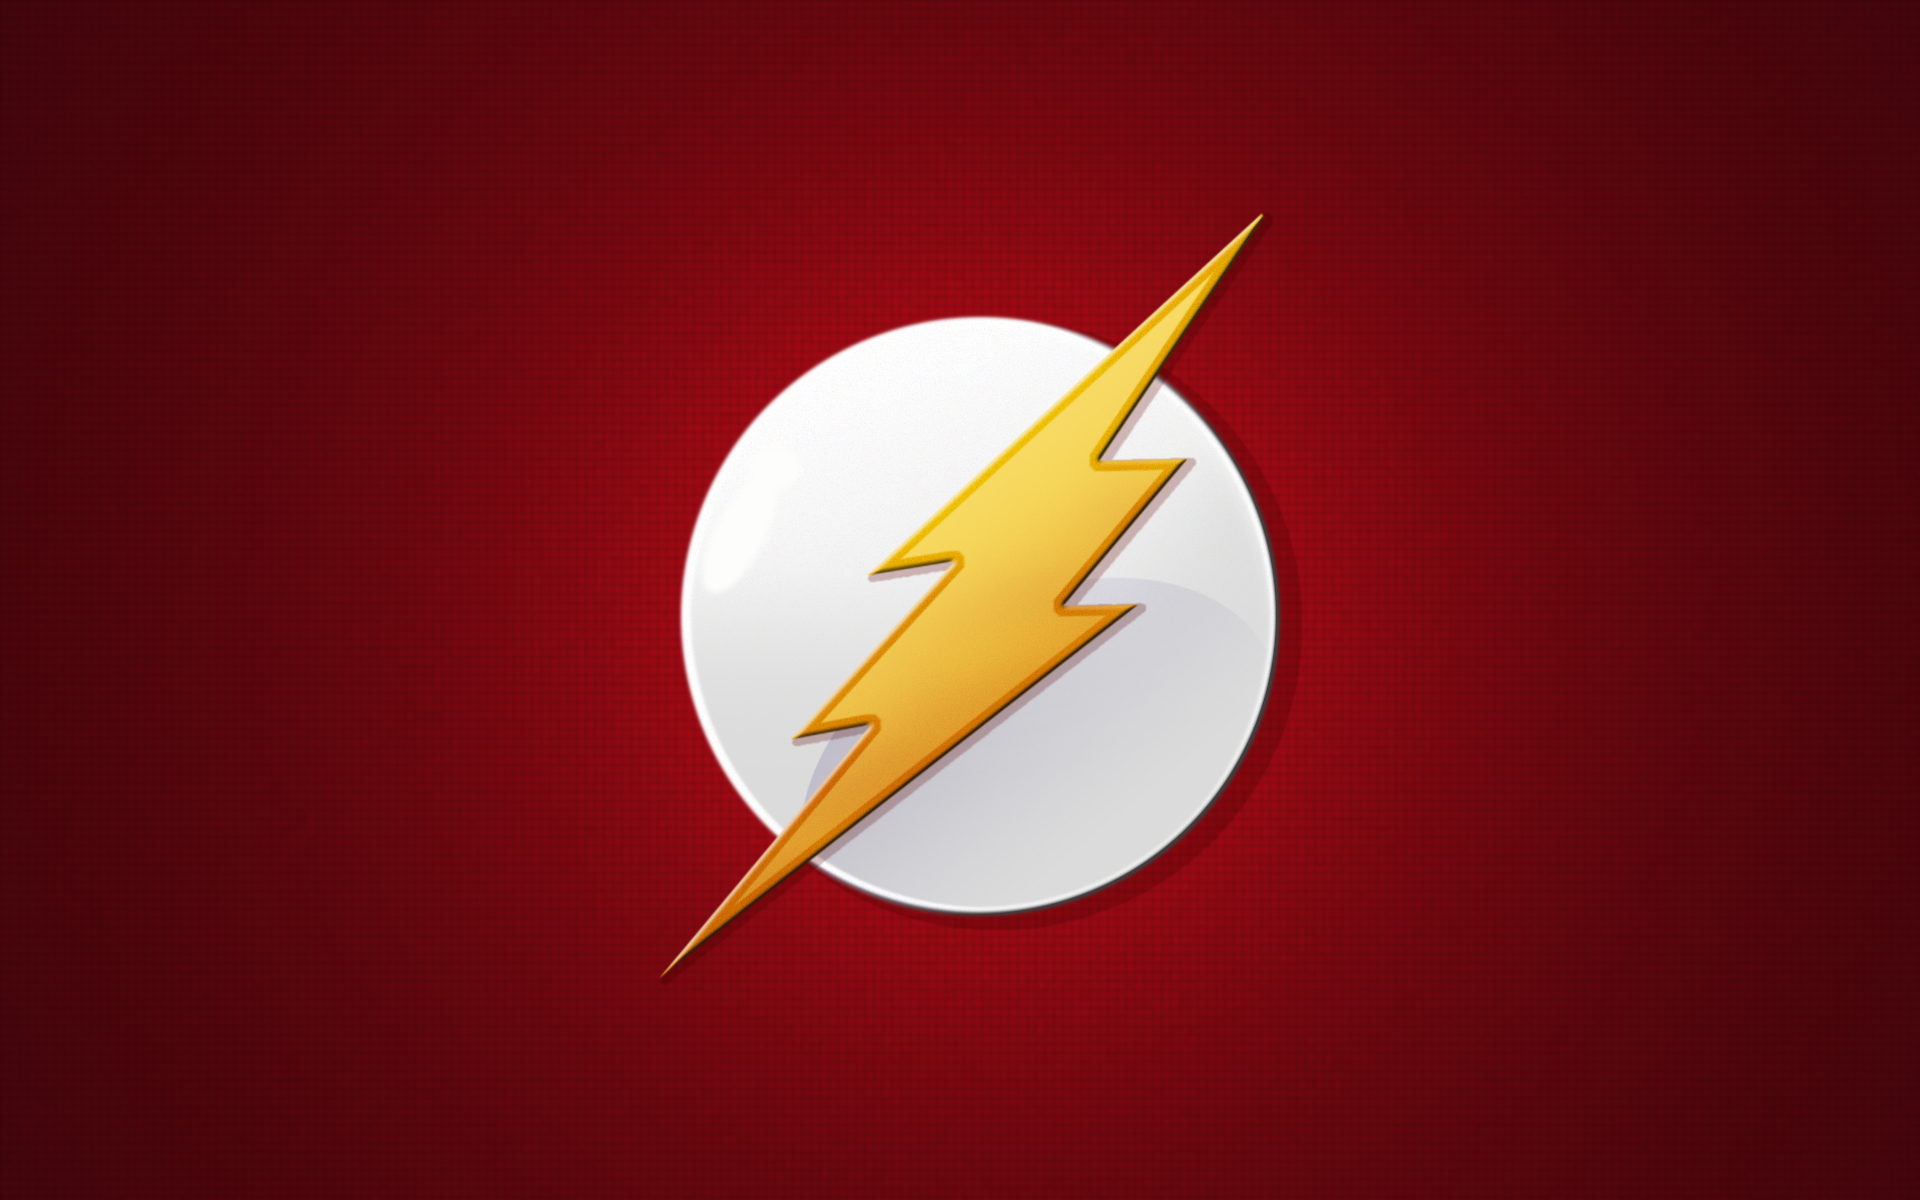 the flash images the flash logo hd wallpaper and background photos